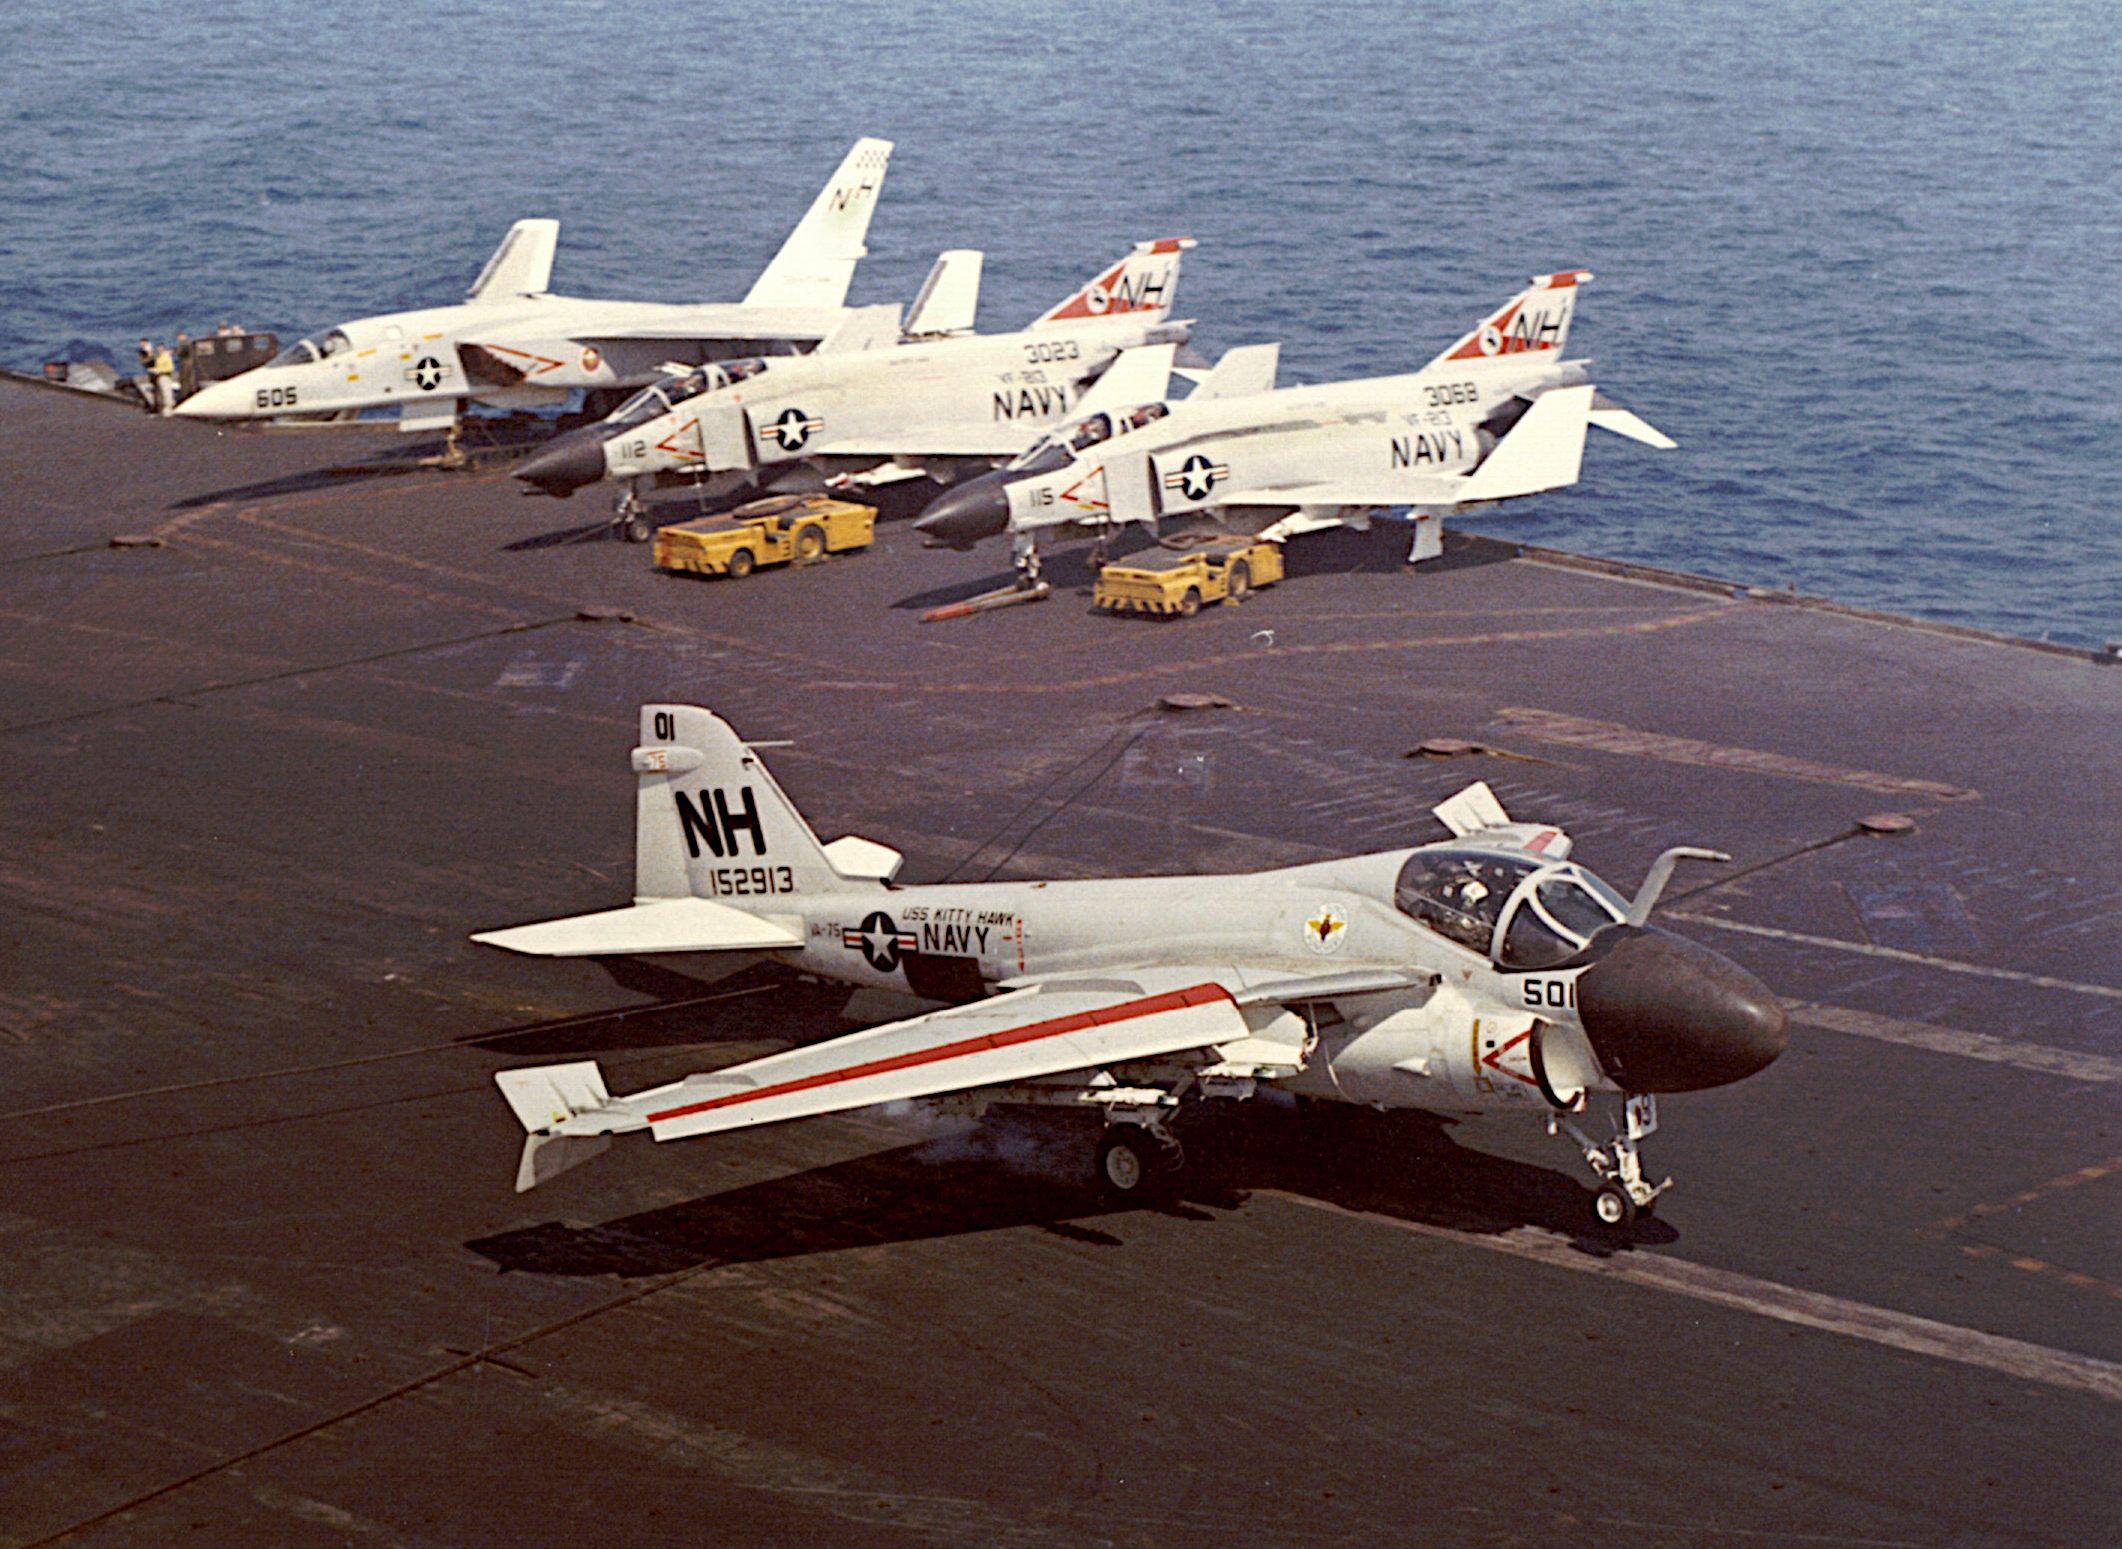 A-6A_VA-75_landing_on_USS_Kitty_Hawk_(CVA-63)_1968.jpeg